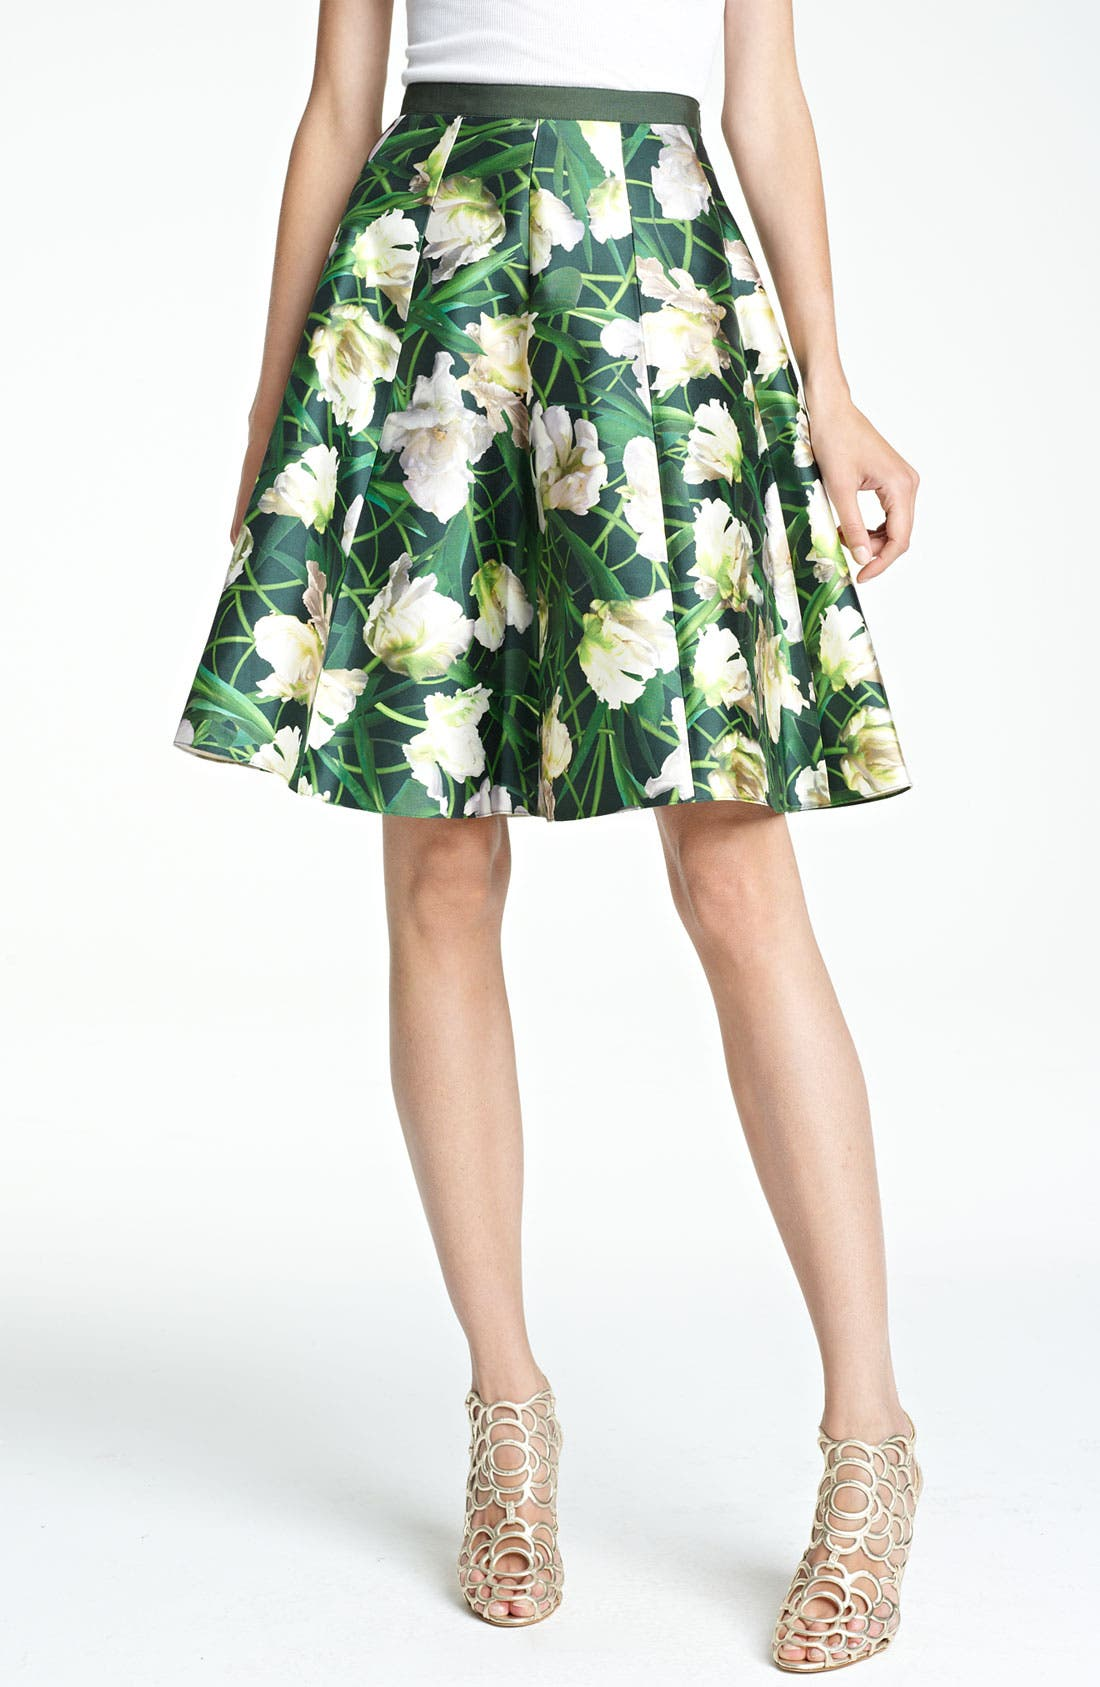 Alternate Image 1 Selected - Oscar de la Renta Floral Print Swing Skirt